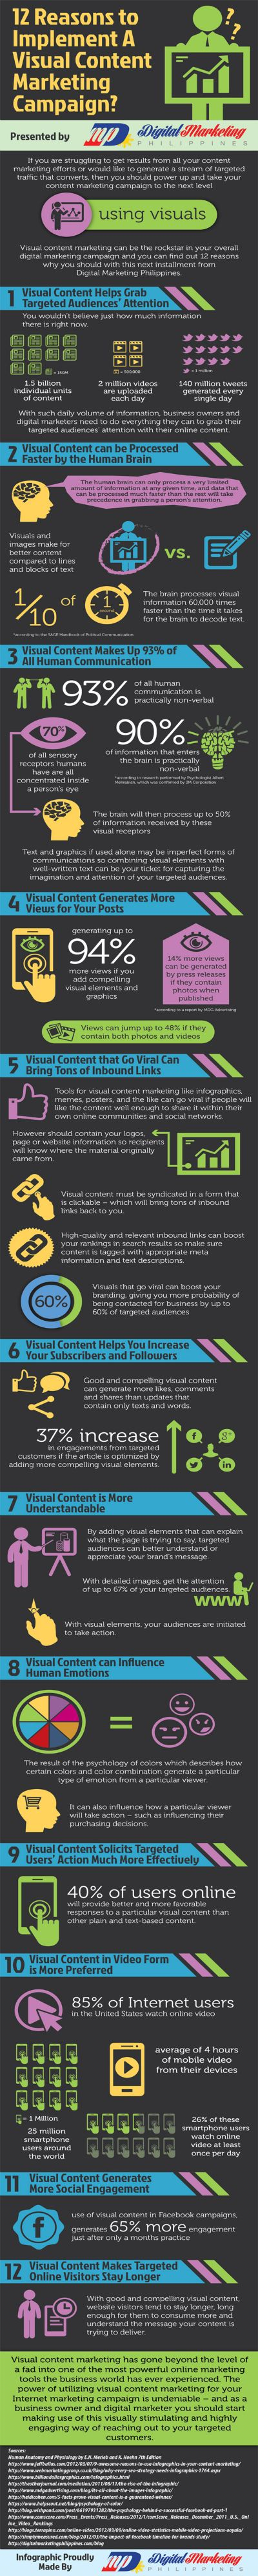 26 best inbound infographics images on pinterest inbound marketing 12 reasons to implement a visual content marketing campaign infographic an infographic from digital marketing philippines fandeluxe